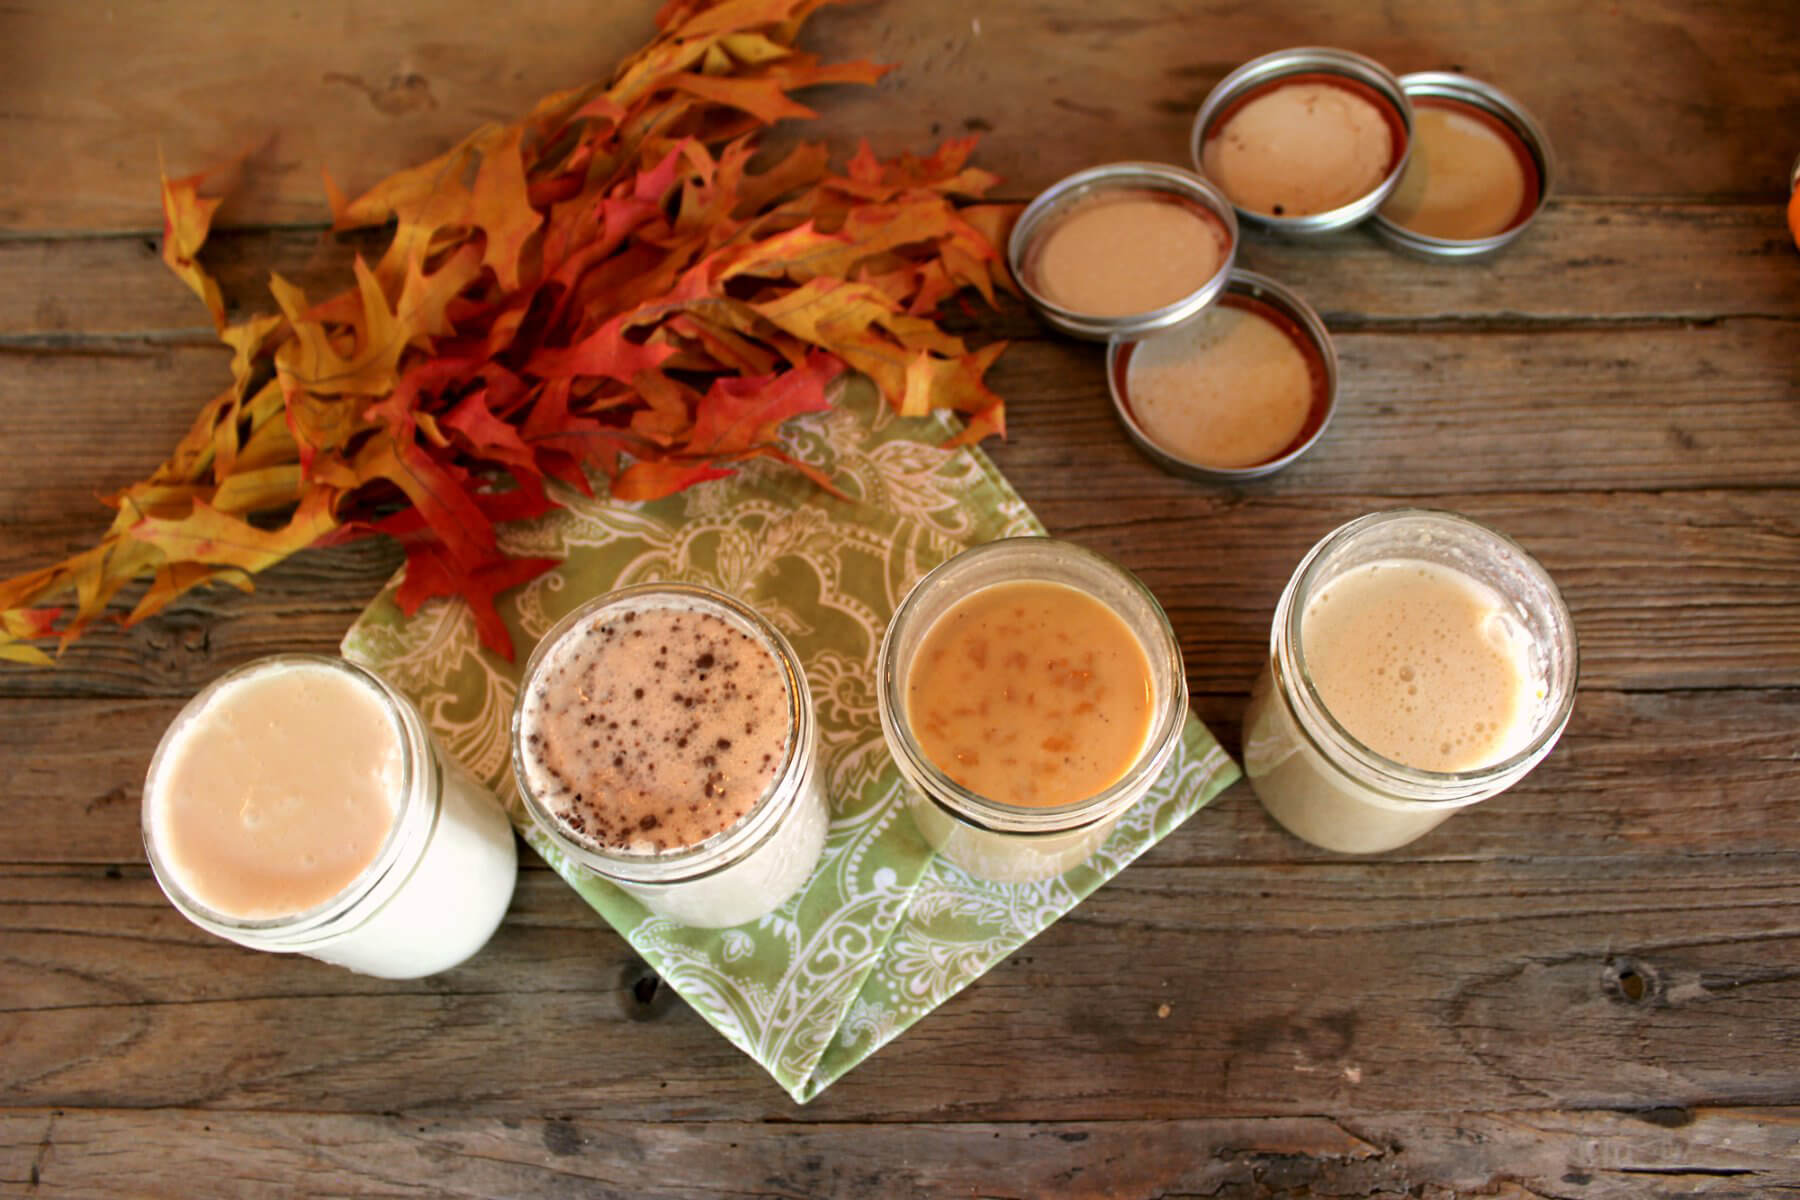 ... vegan coffee creamers that are smoother, creamier, and tastier than store-bought ones, which are usually packed with chemicals and cruelty.